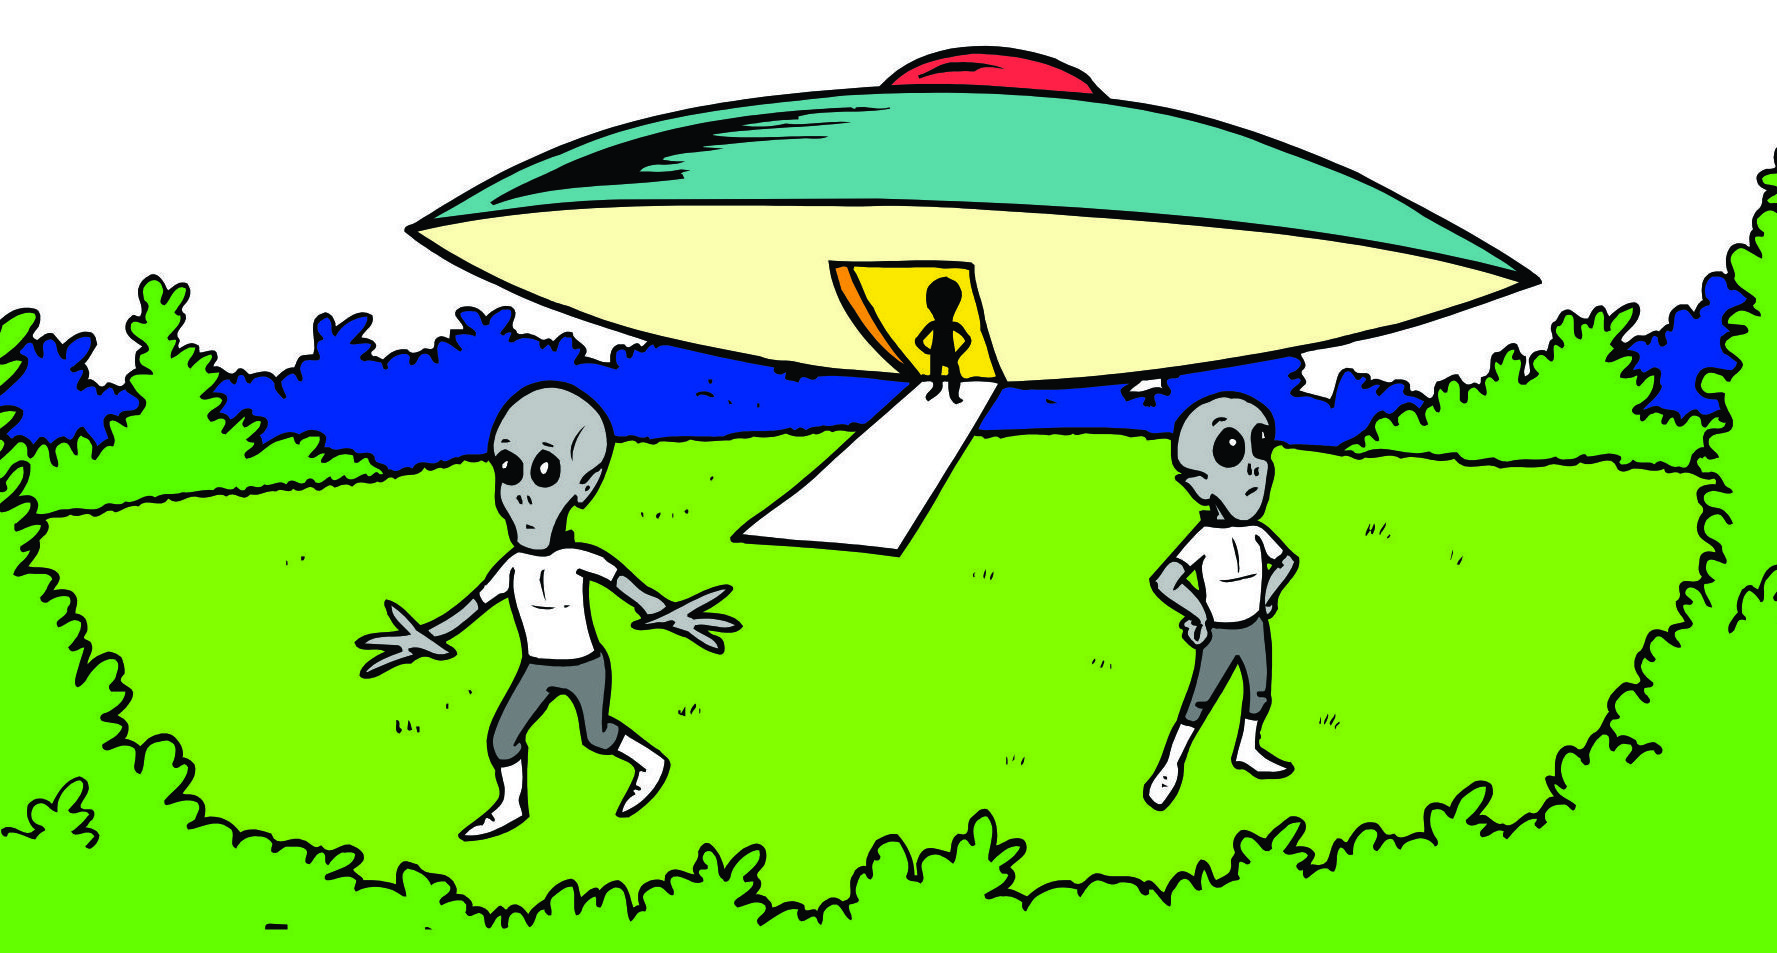 Alien Spaceship Clipart Alien Spaceship Clipart Images